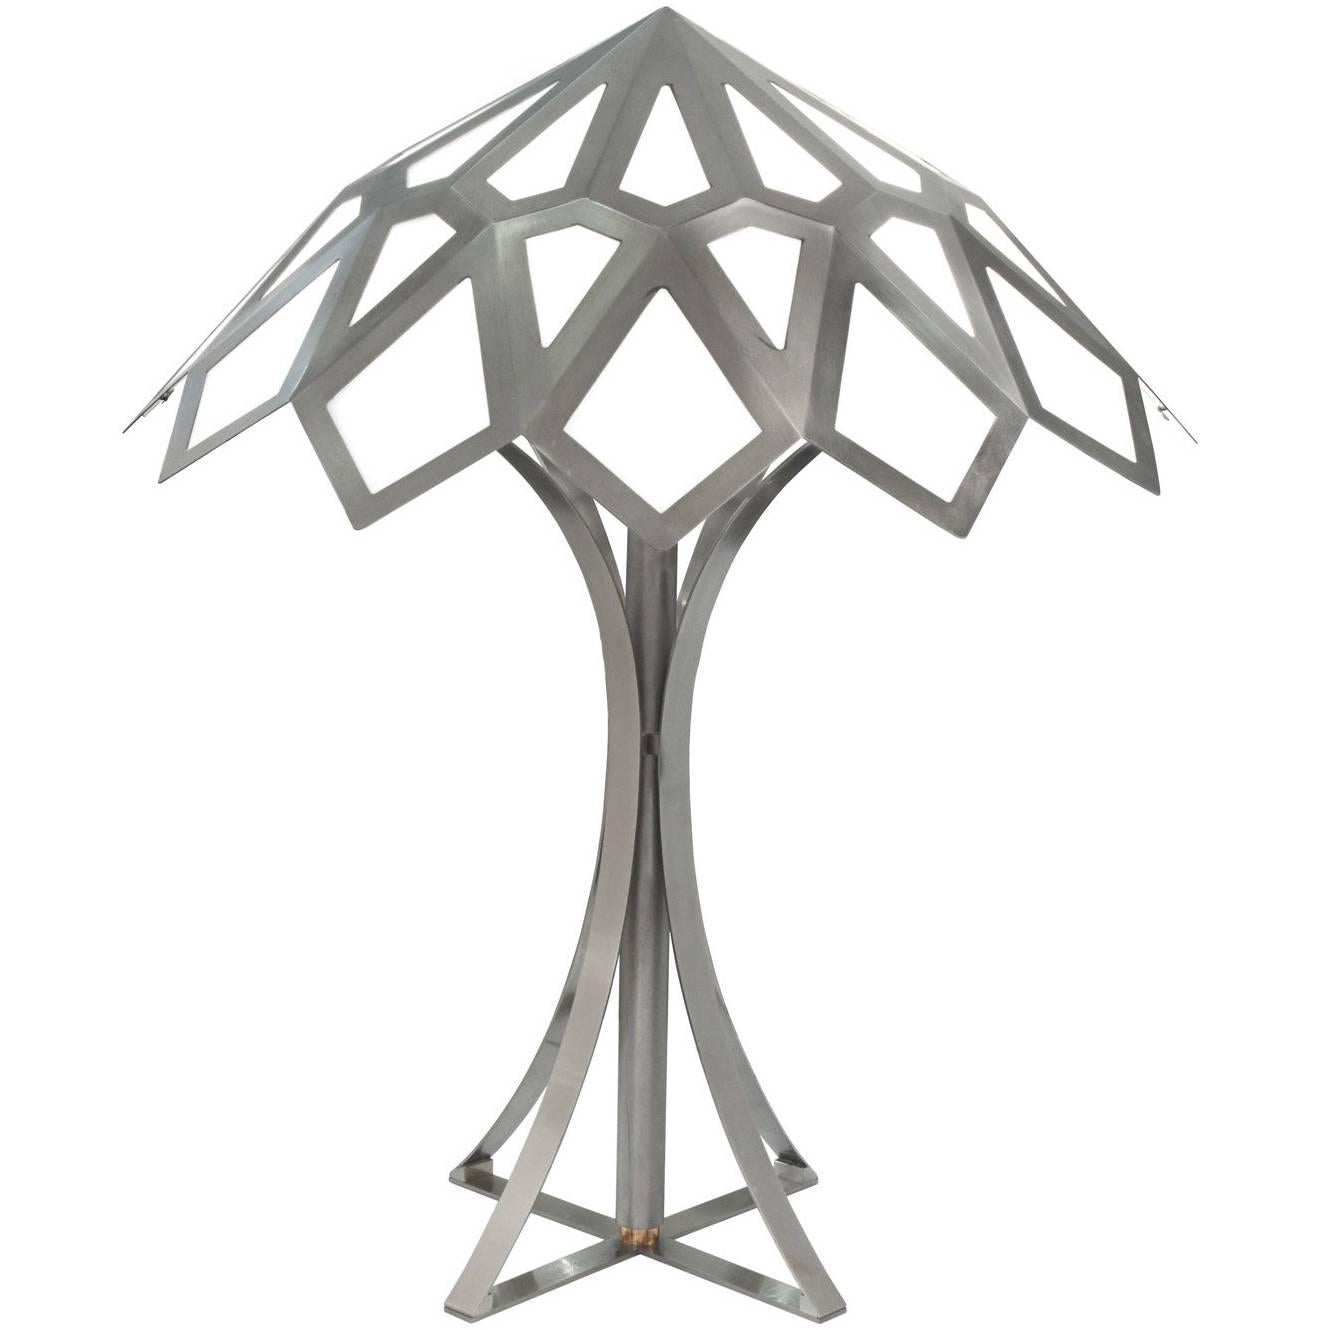 """Gabriella Crespi Rare and Exceptional Large """"Caleidoscopo"""" Table Lamp, 1974"""